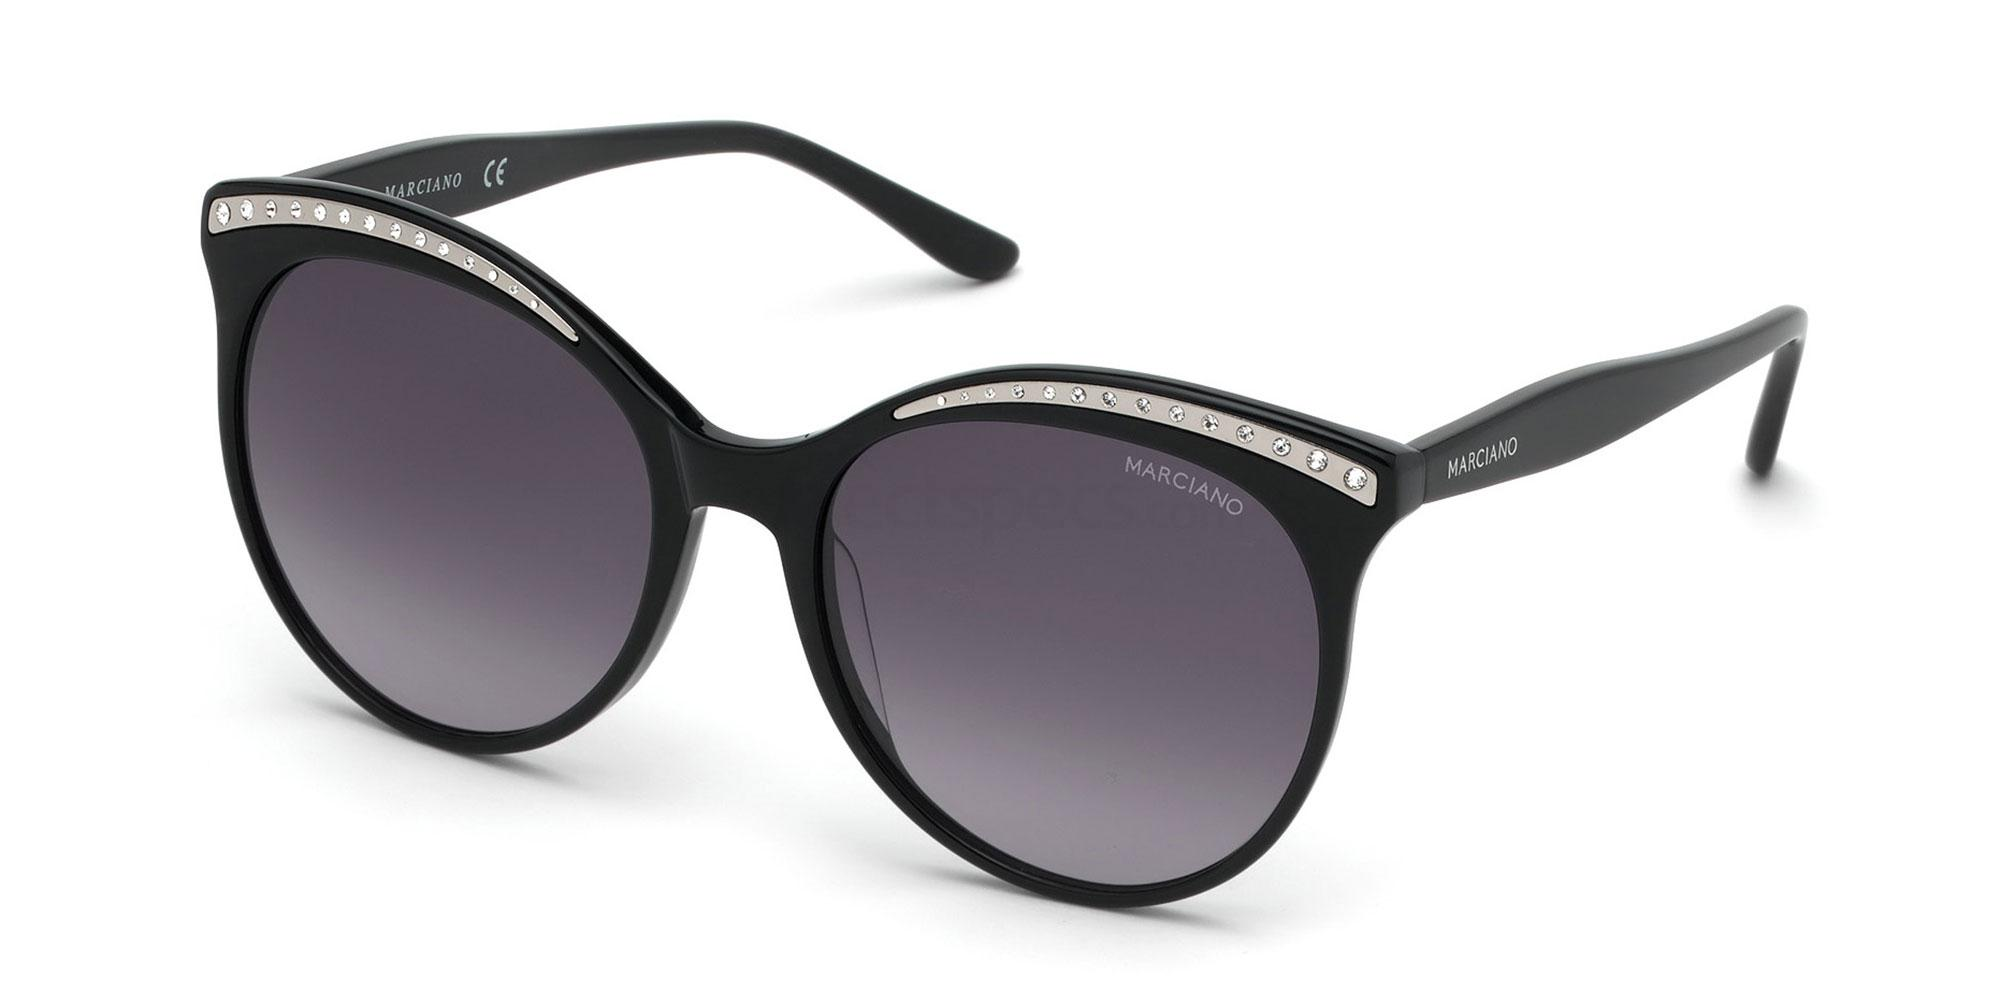 01B GM0794 Sunglasses, Guess by Marciano